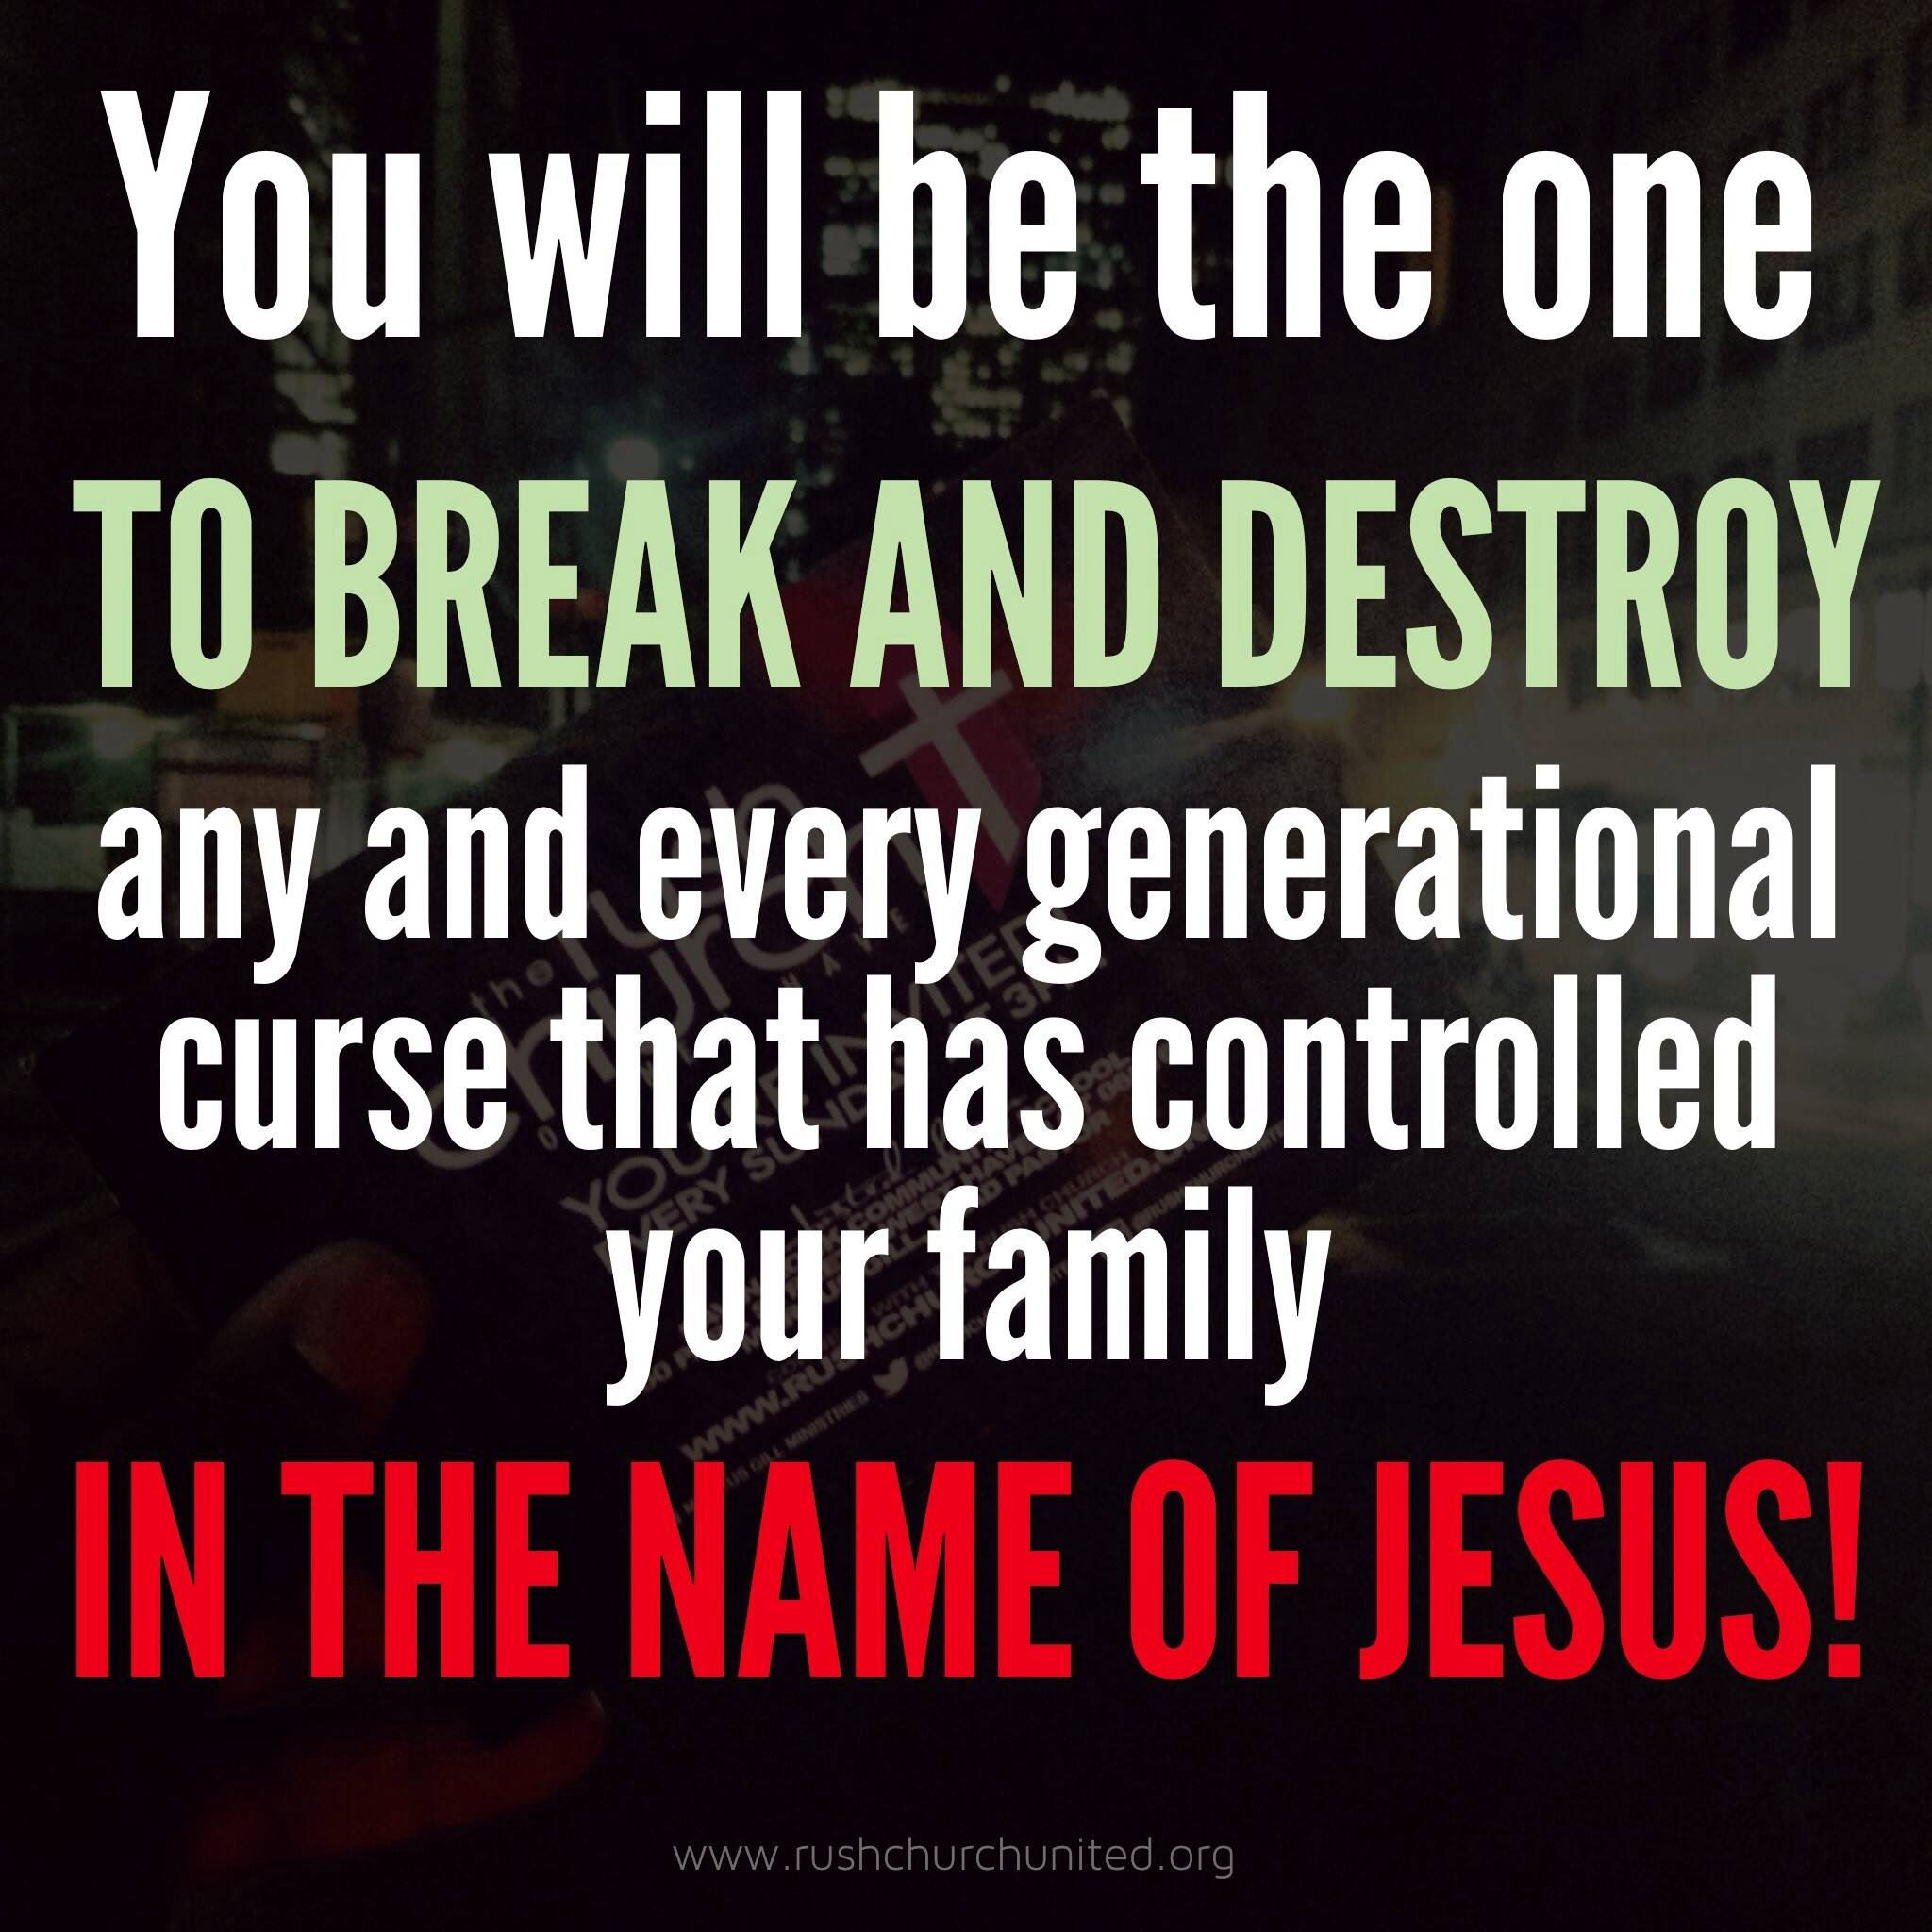 God will be the one to break and destroy any and every generational curse that has controlled your family in the name of jesus just ask